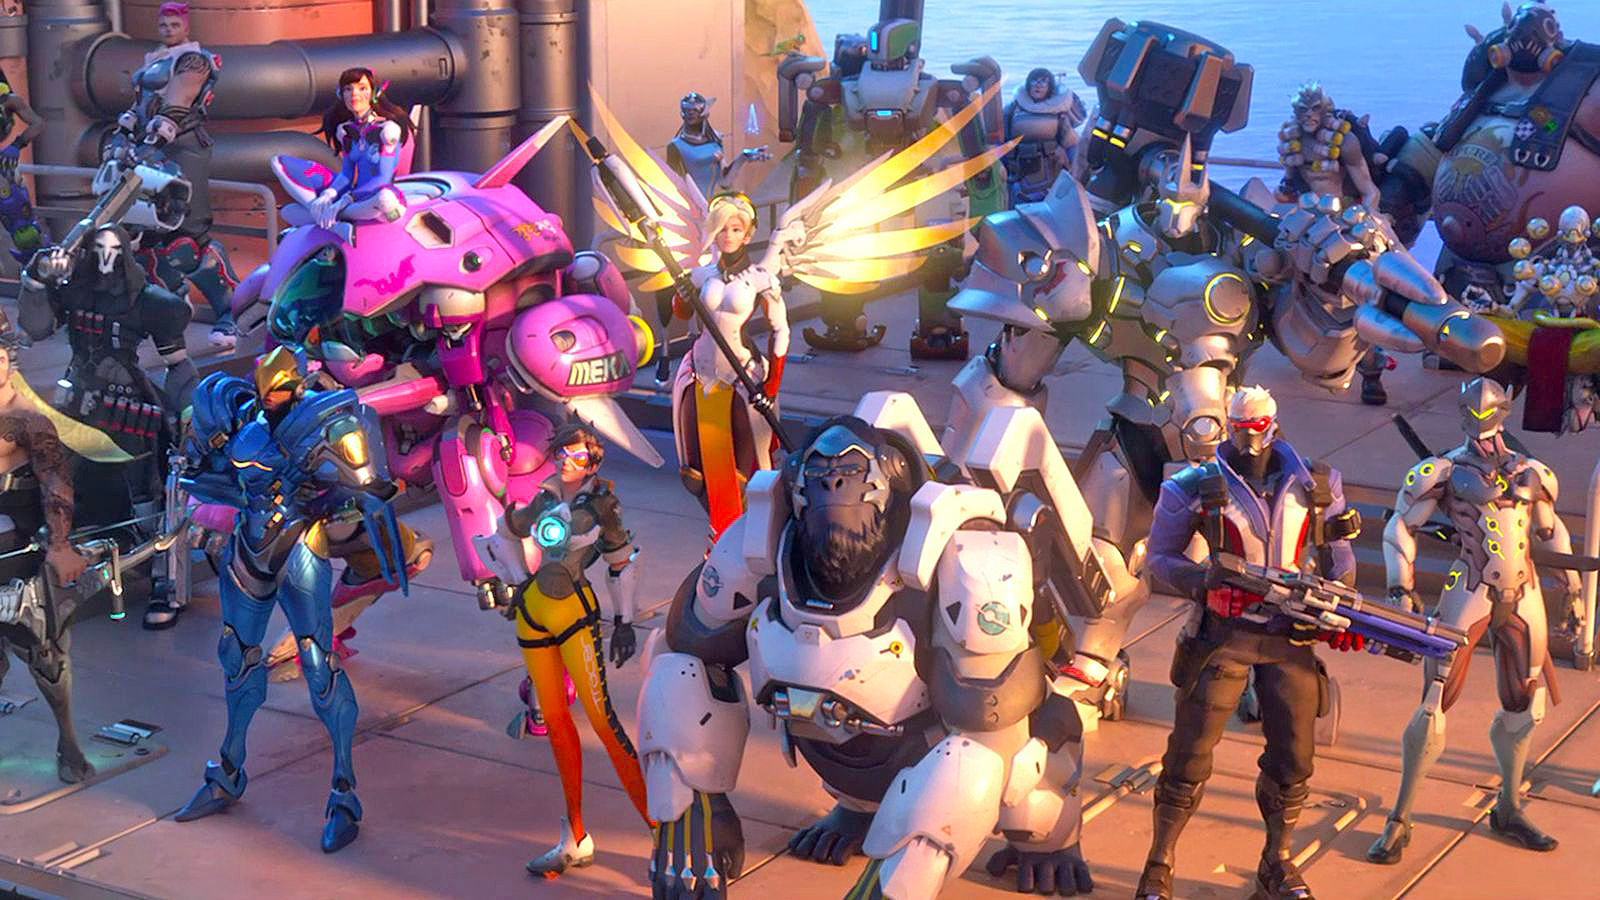 Blizzard Teases Overwatch Character Efi Oladele, Possible New Hero